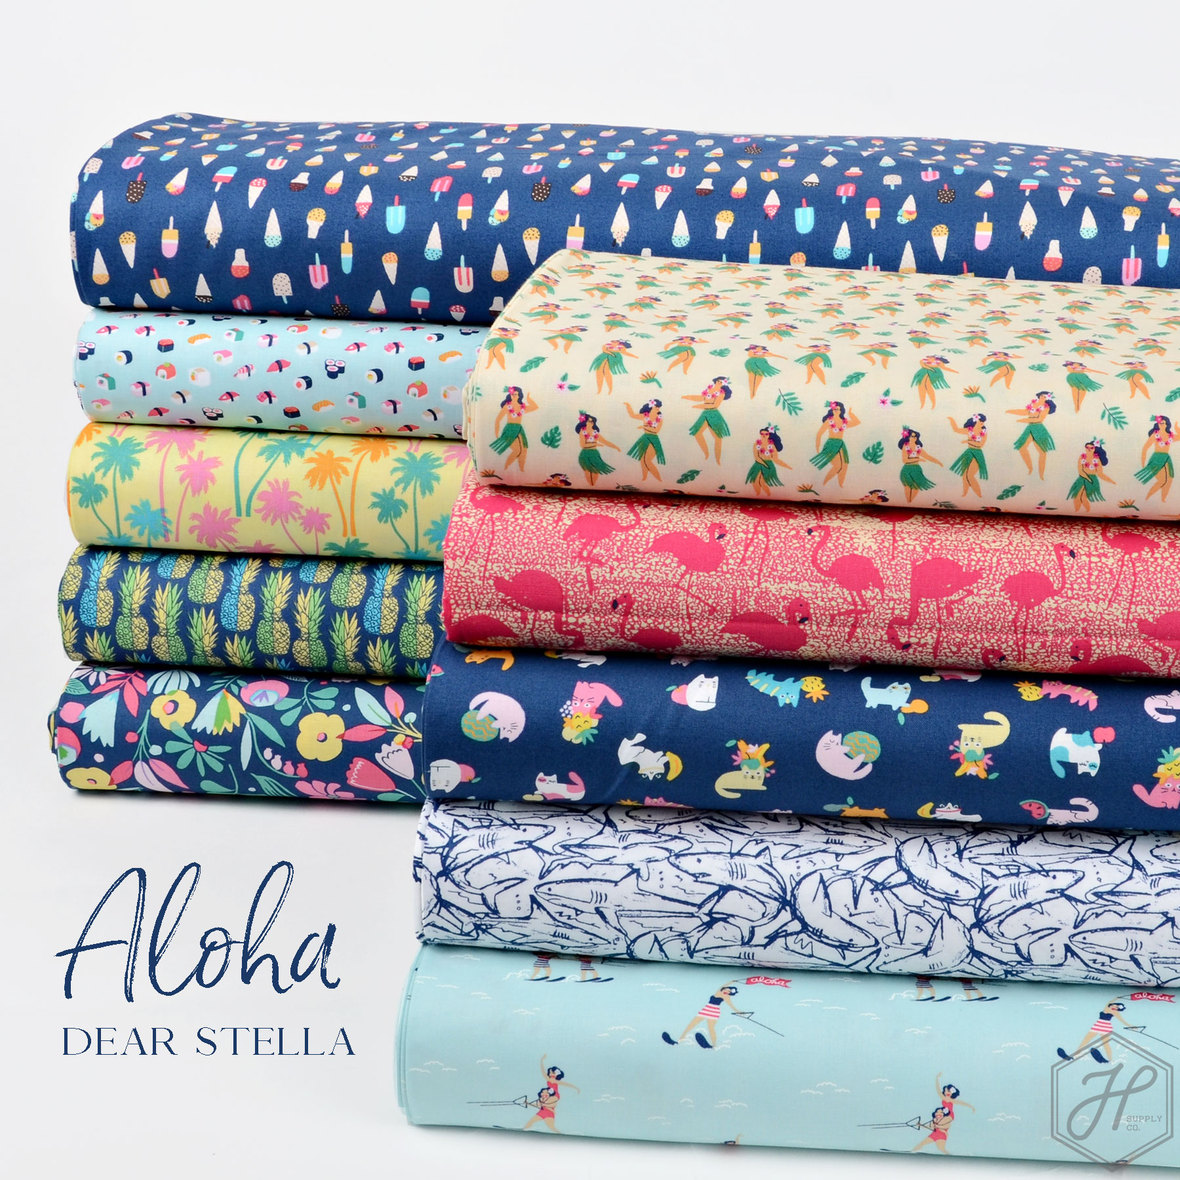 Dear-Stella-Aloha-Fabric-at-Hawthorne-Supply-Co